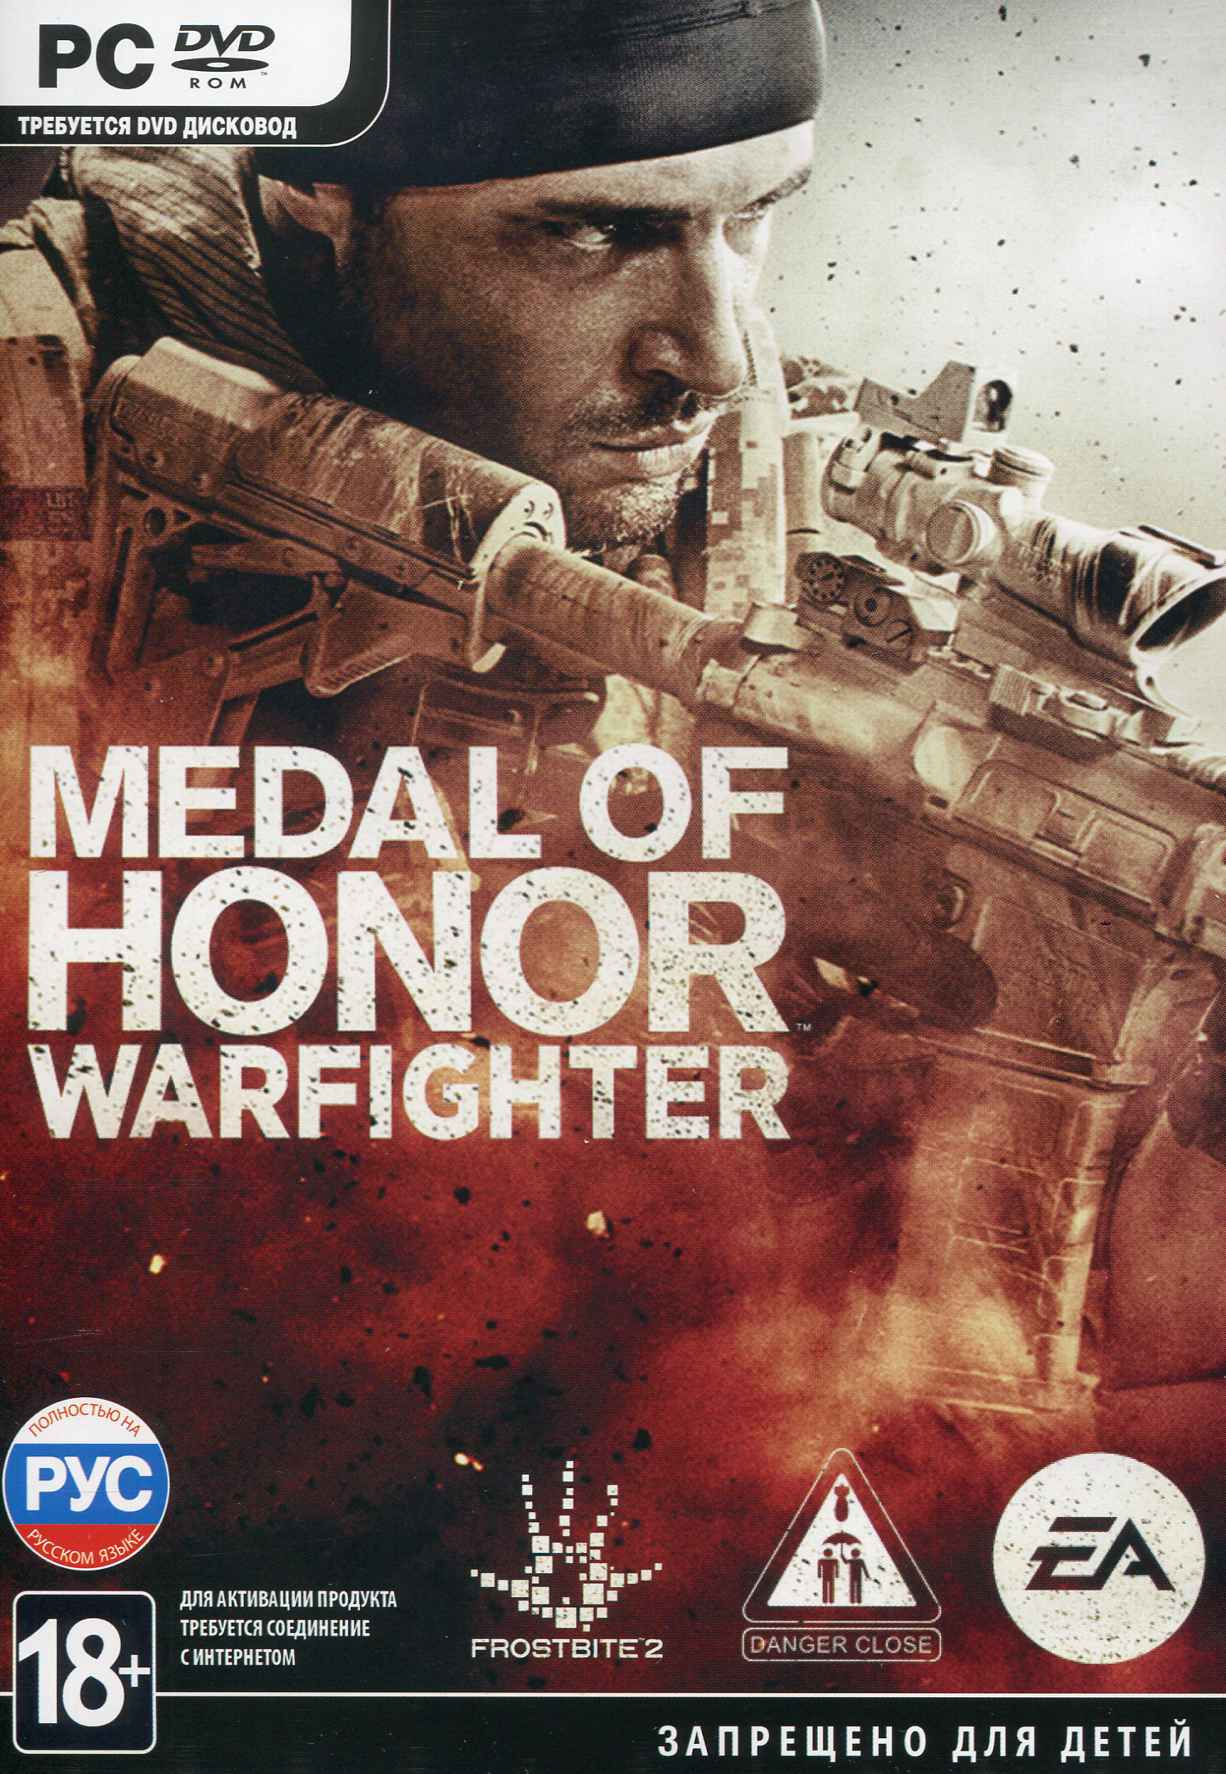 Medal of Honor: Warfighter (Key to Electronic Arts)